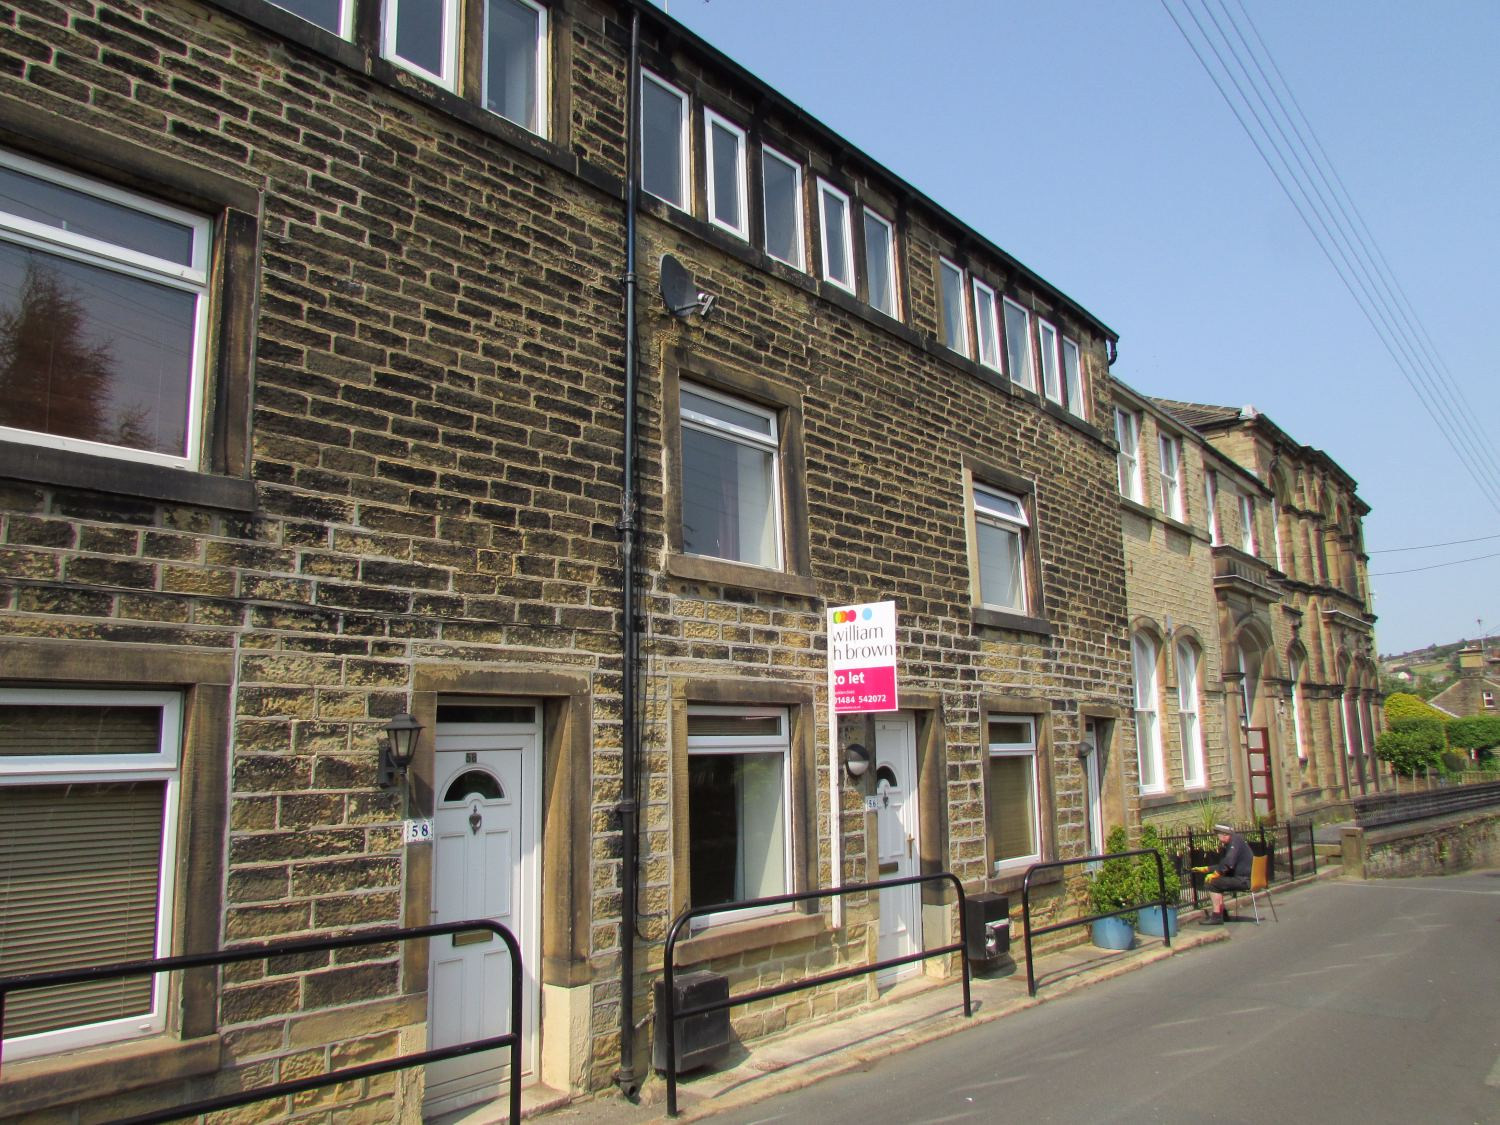 56 Upperthong Lane, Holmfirth